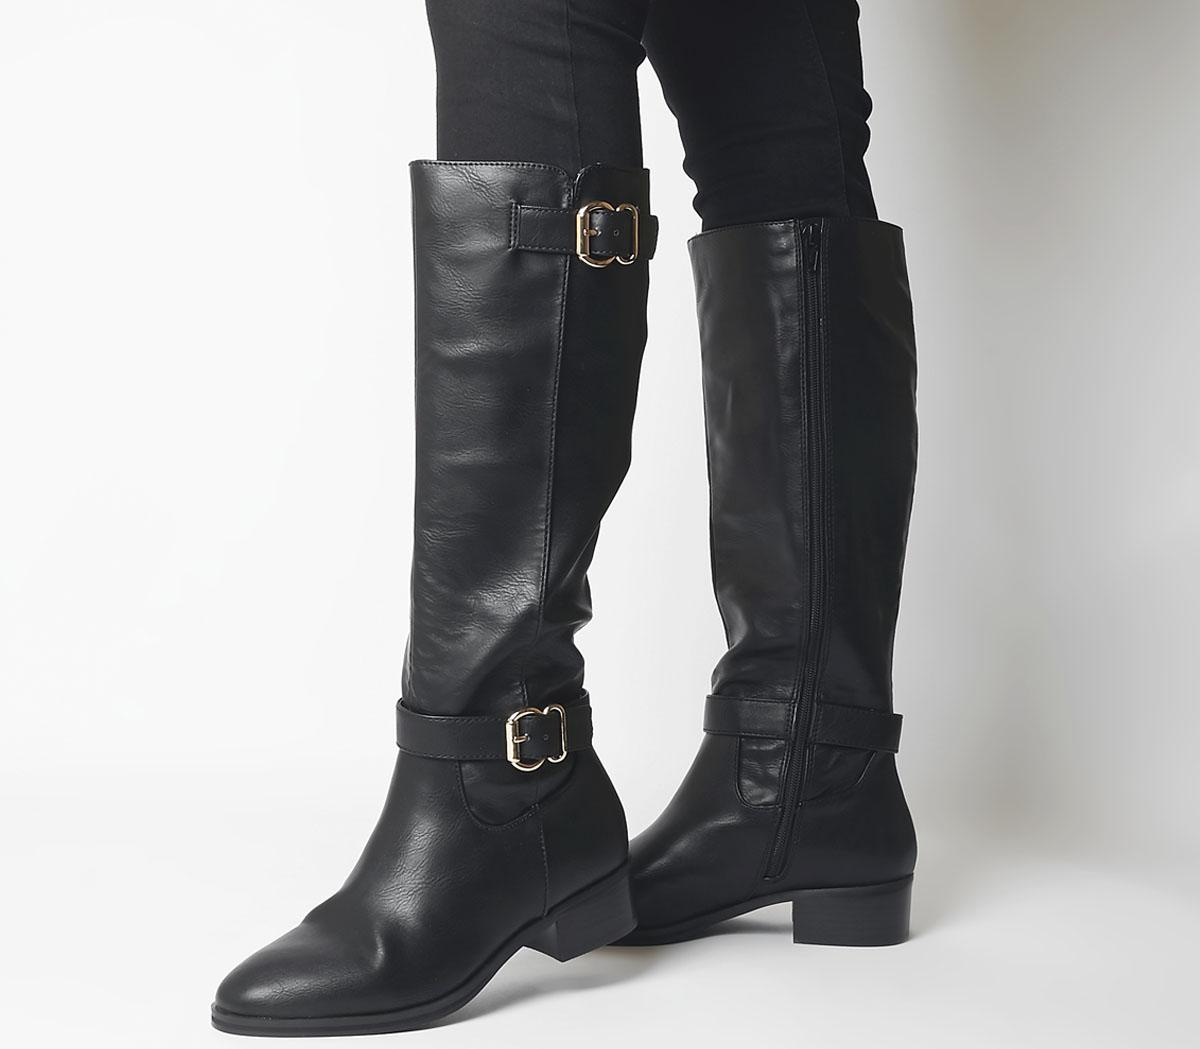 Kane- Buckle Detail Riding Boot